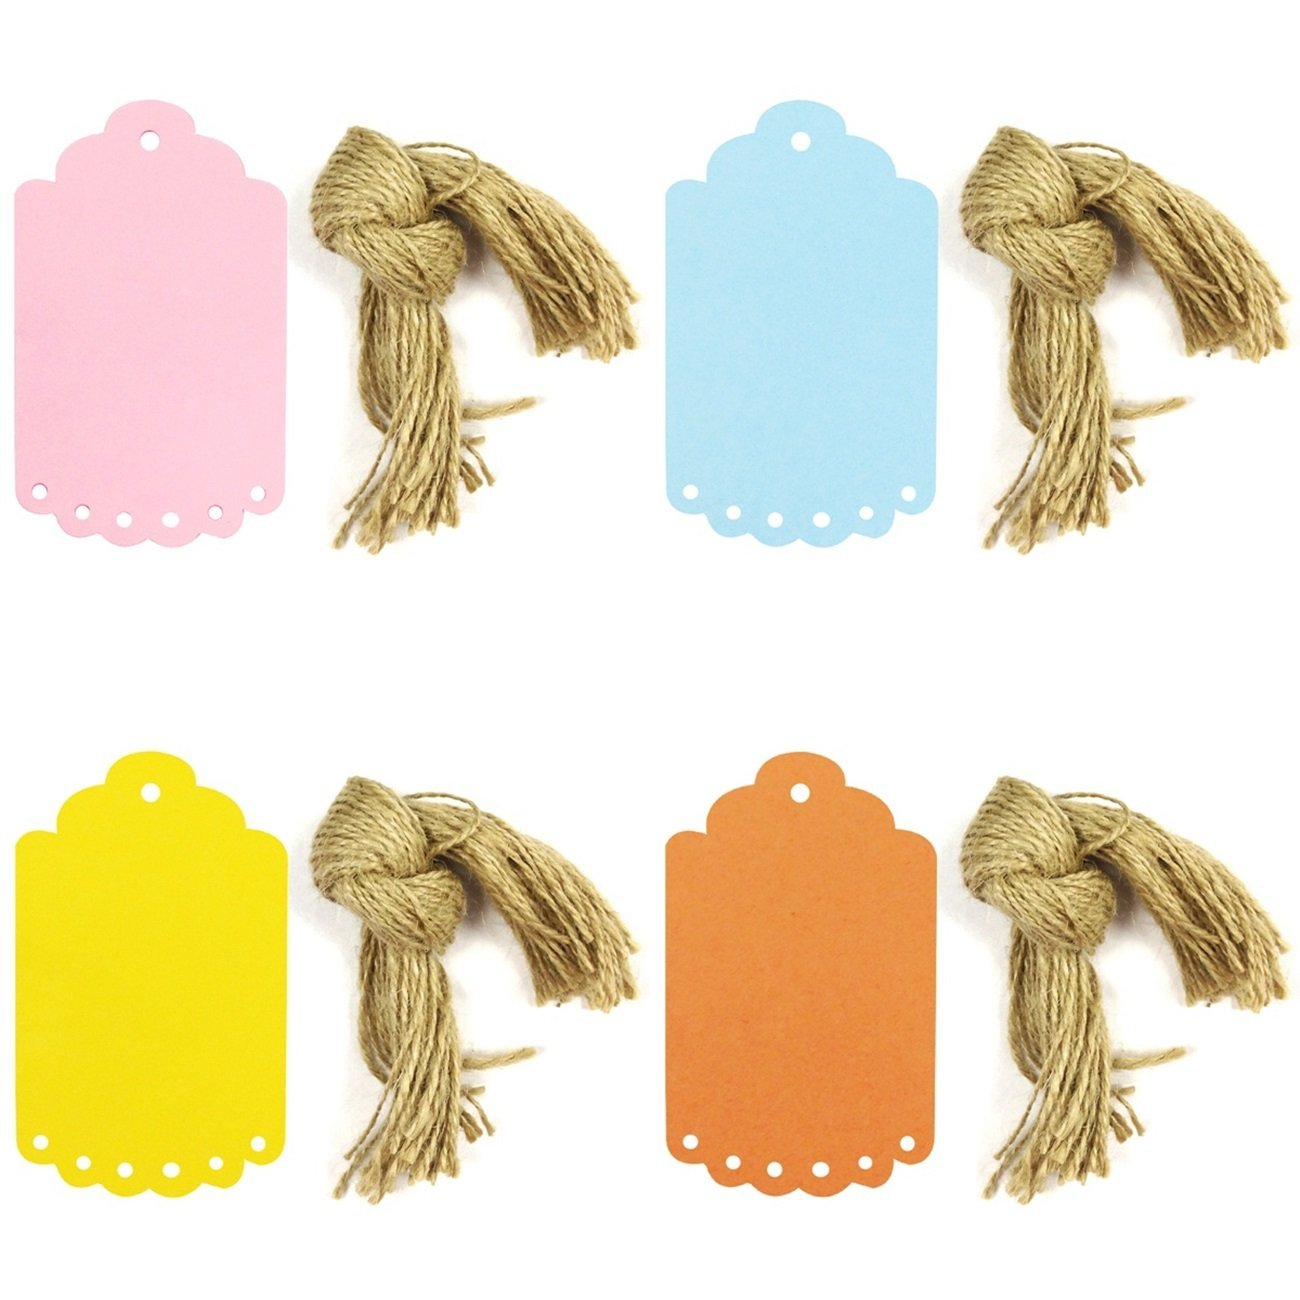 Wrapables 40 Gift Tags/Kraft Hang Tags with Free Cut Strings, Large Scalloped Edge (Set of 4)